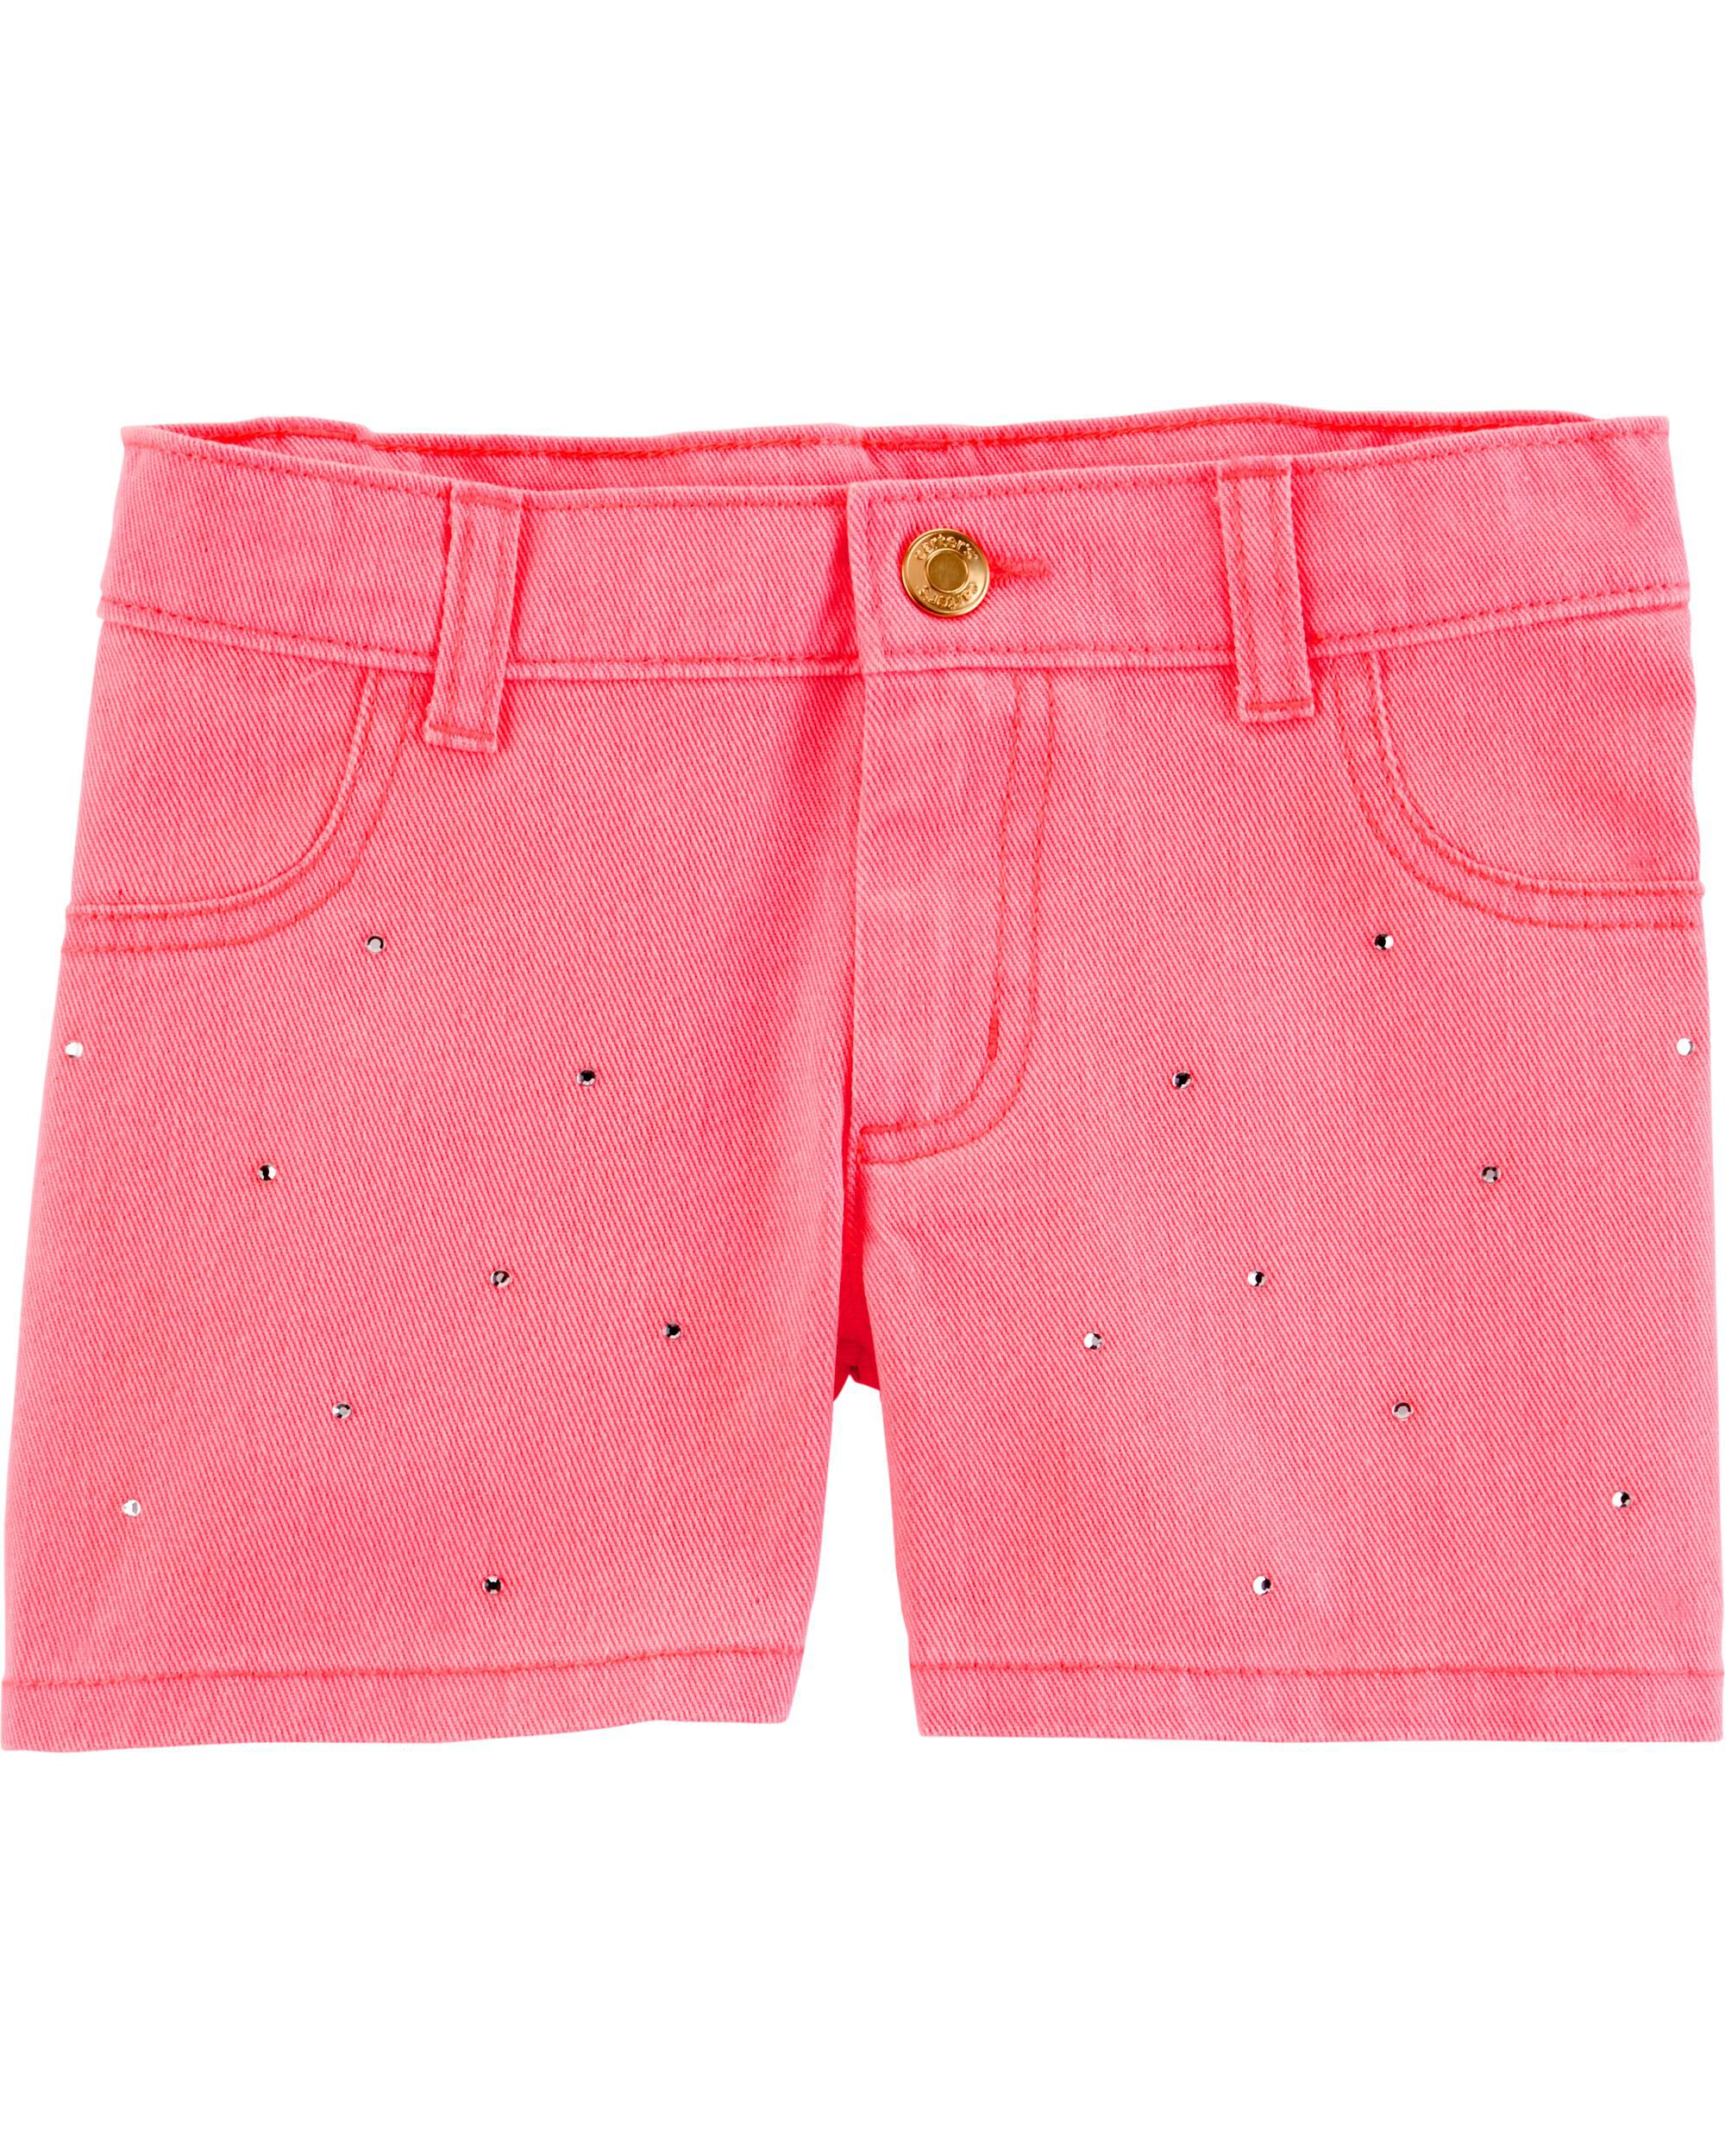 *Clearance*  Rhinestone Flower Twill Shorts